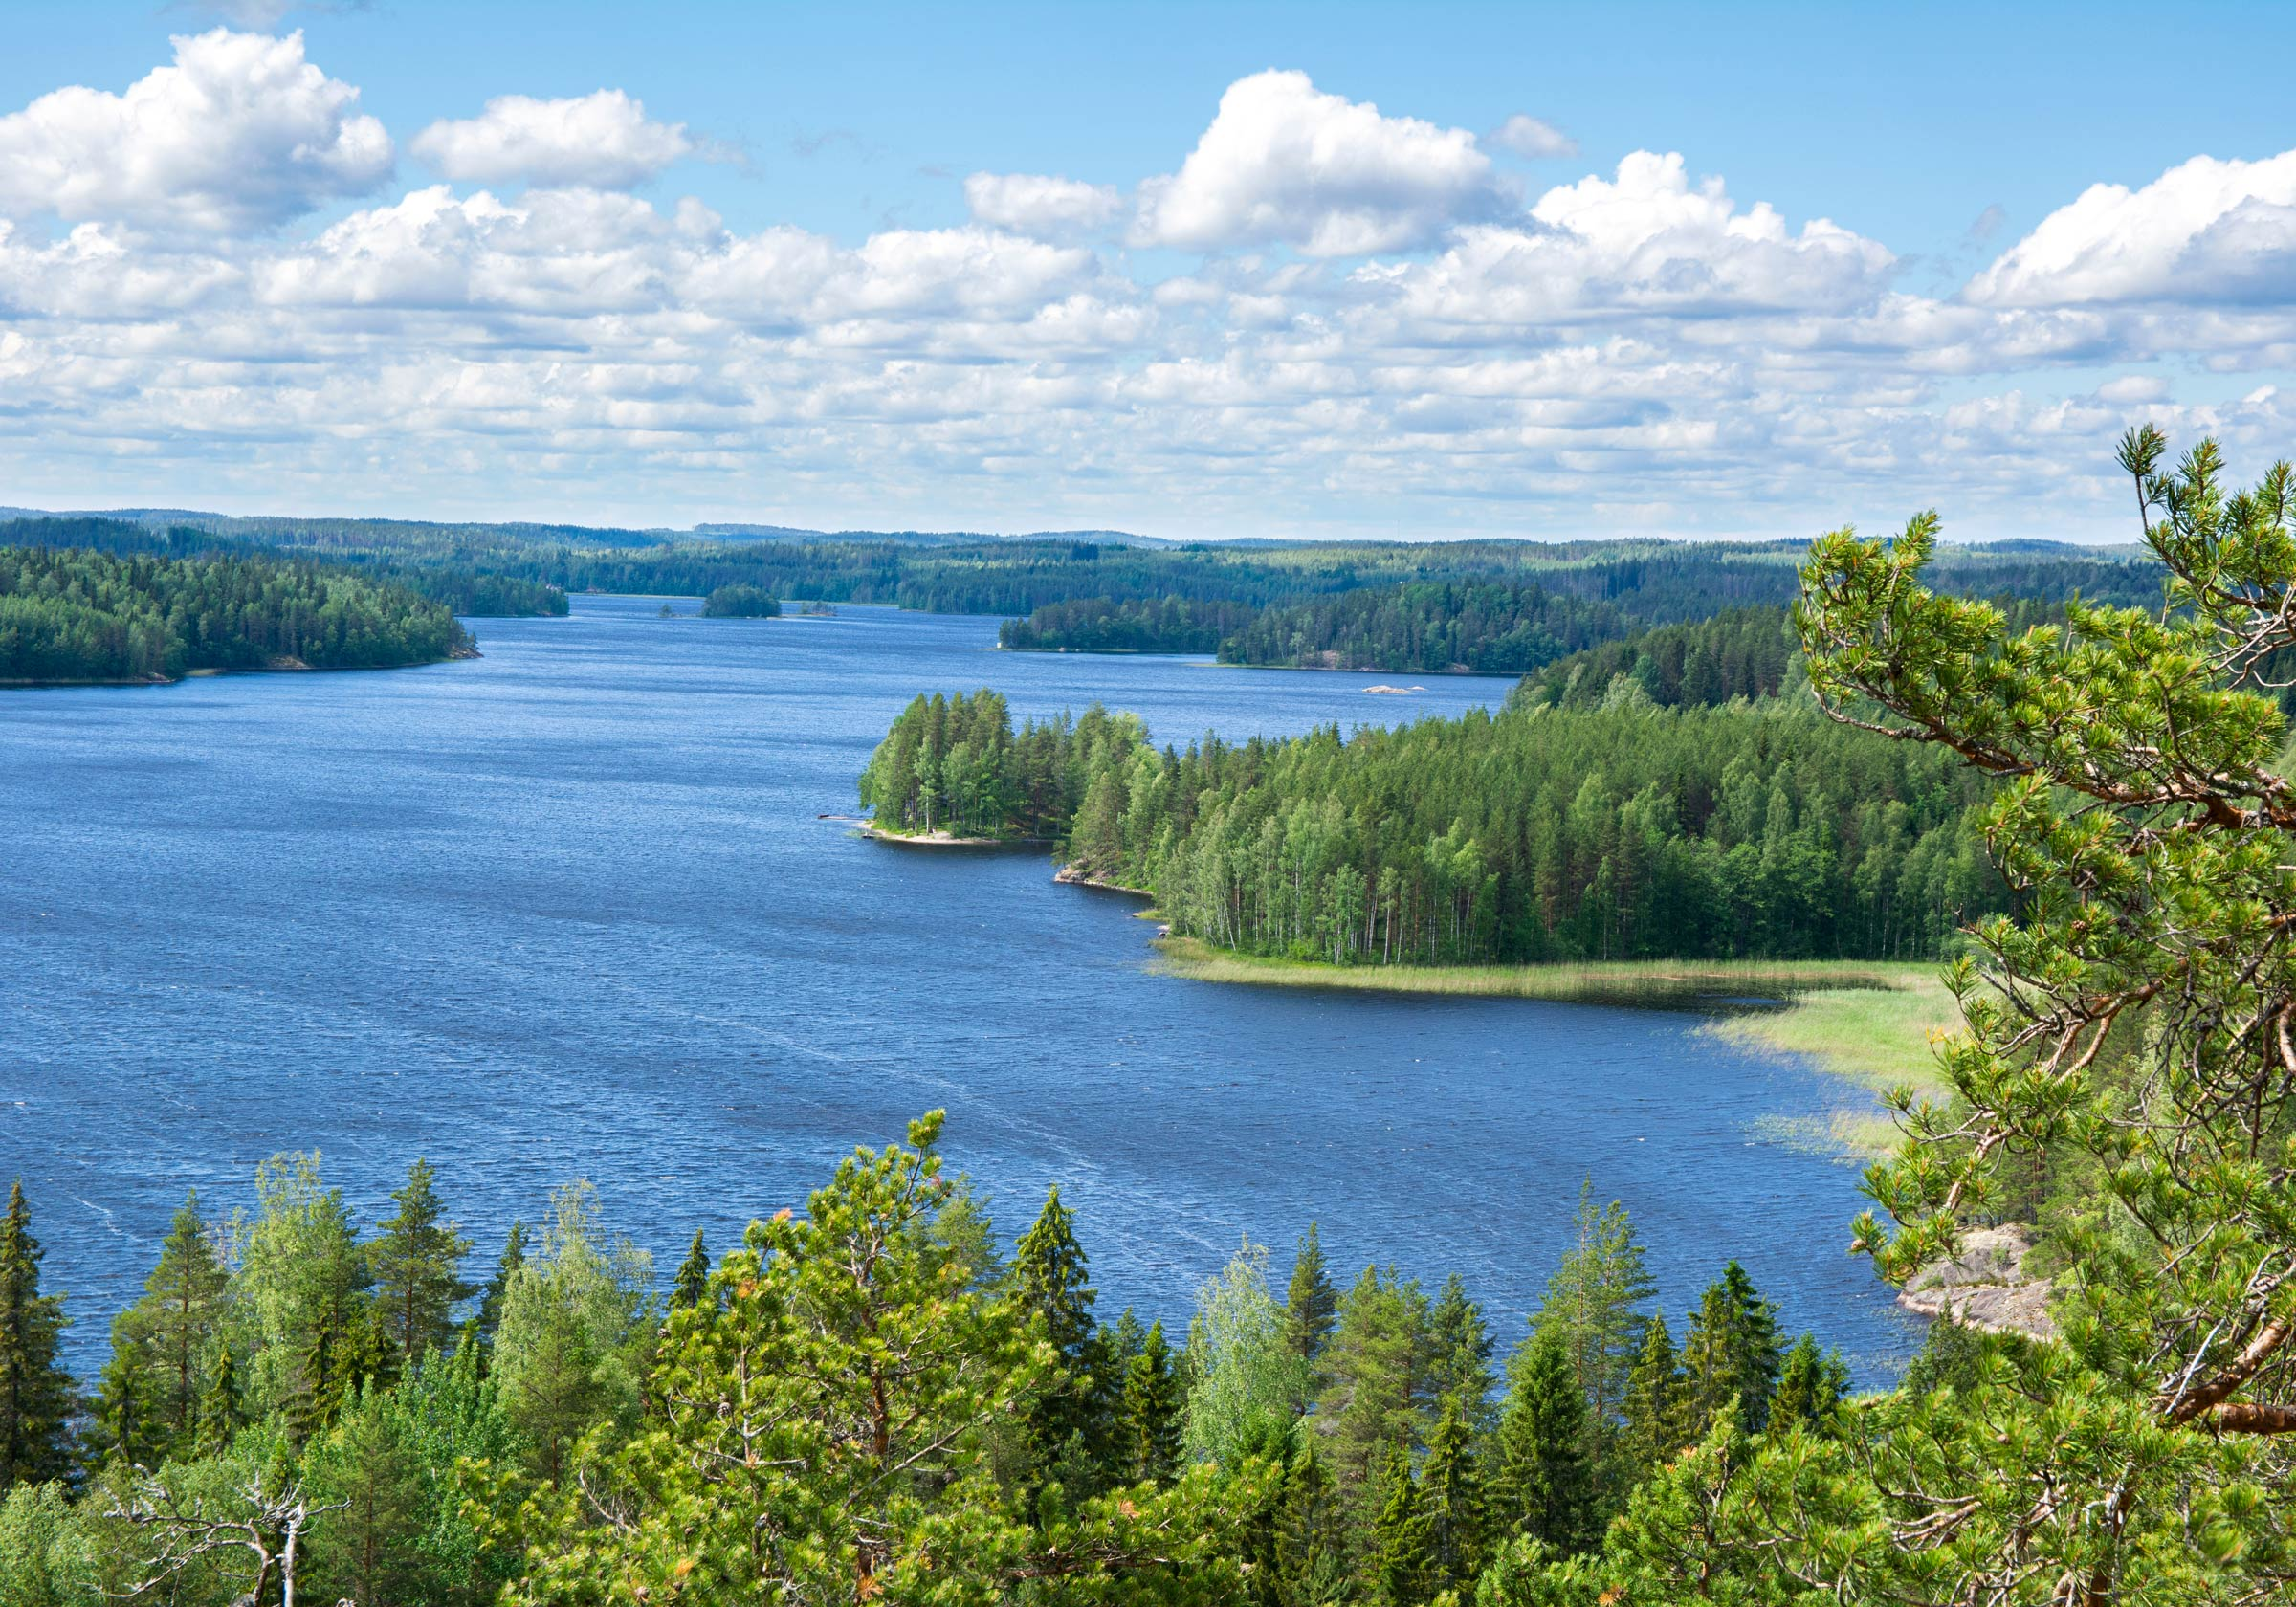 An aerial view of Finnish Lakeland